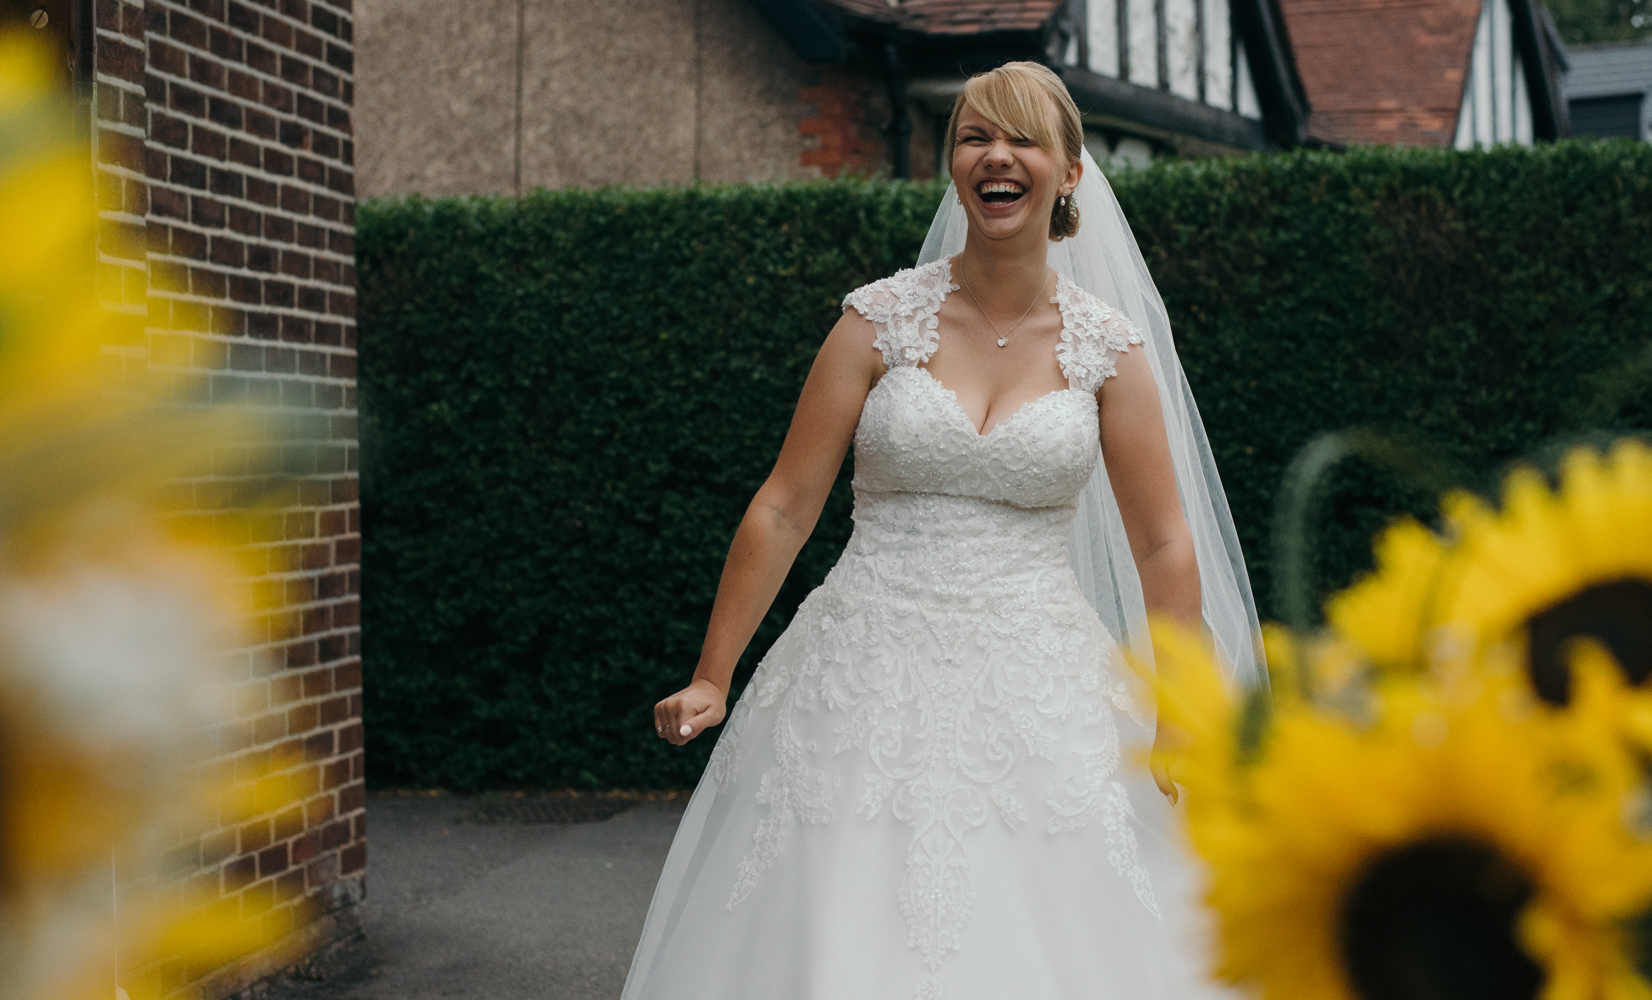 The bride acting silly before going in to church for her wedding ceremony